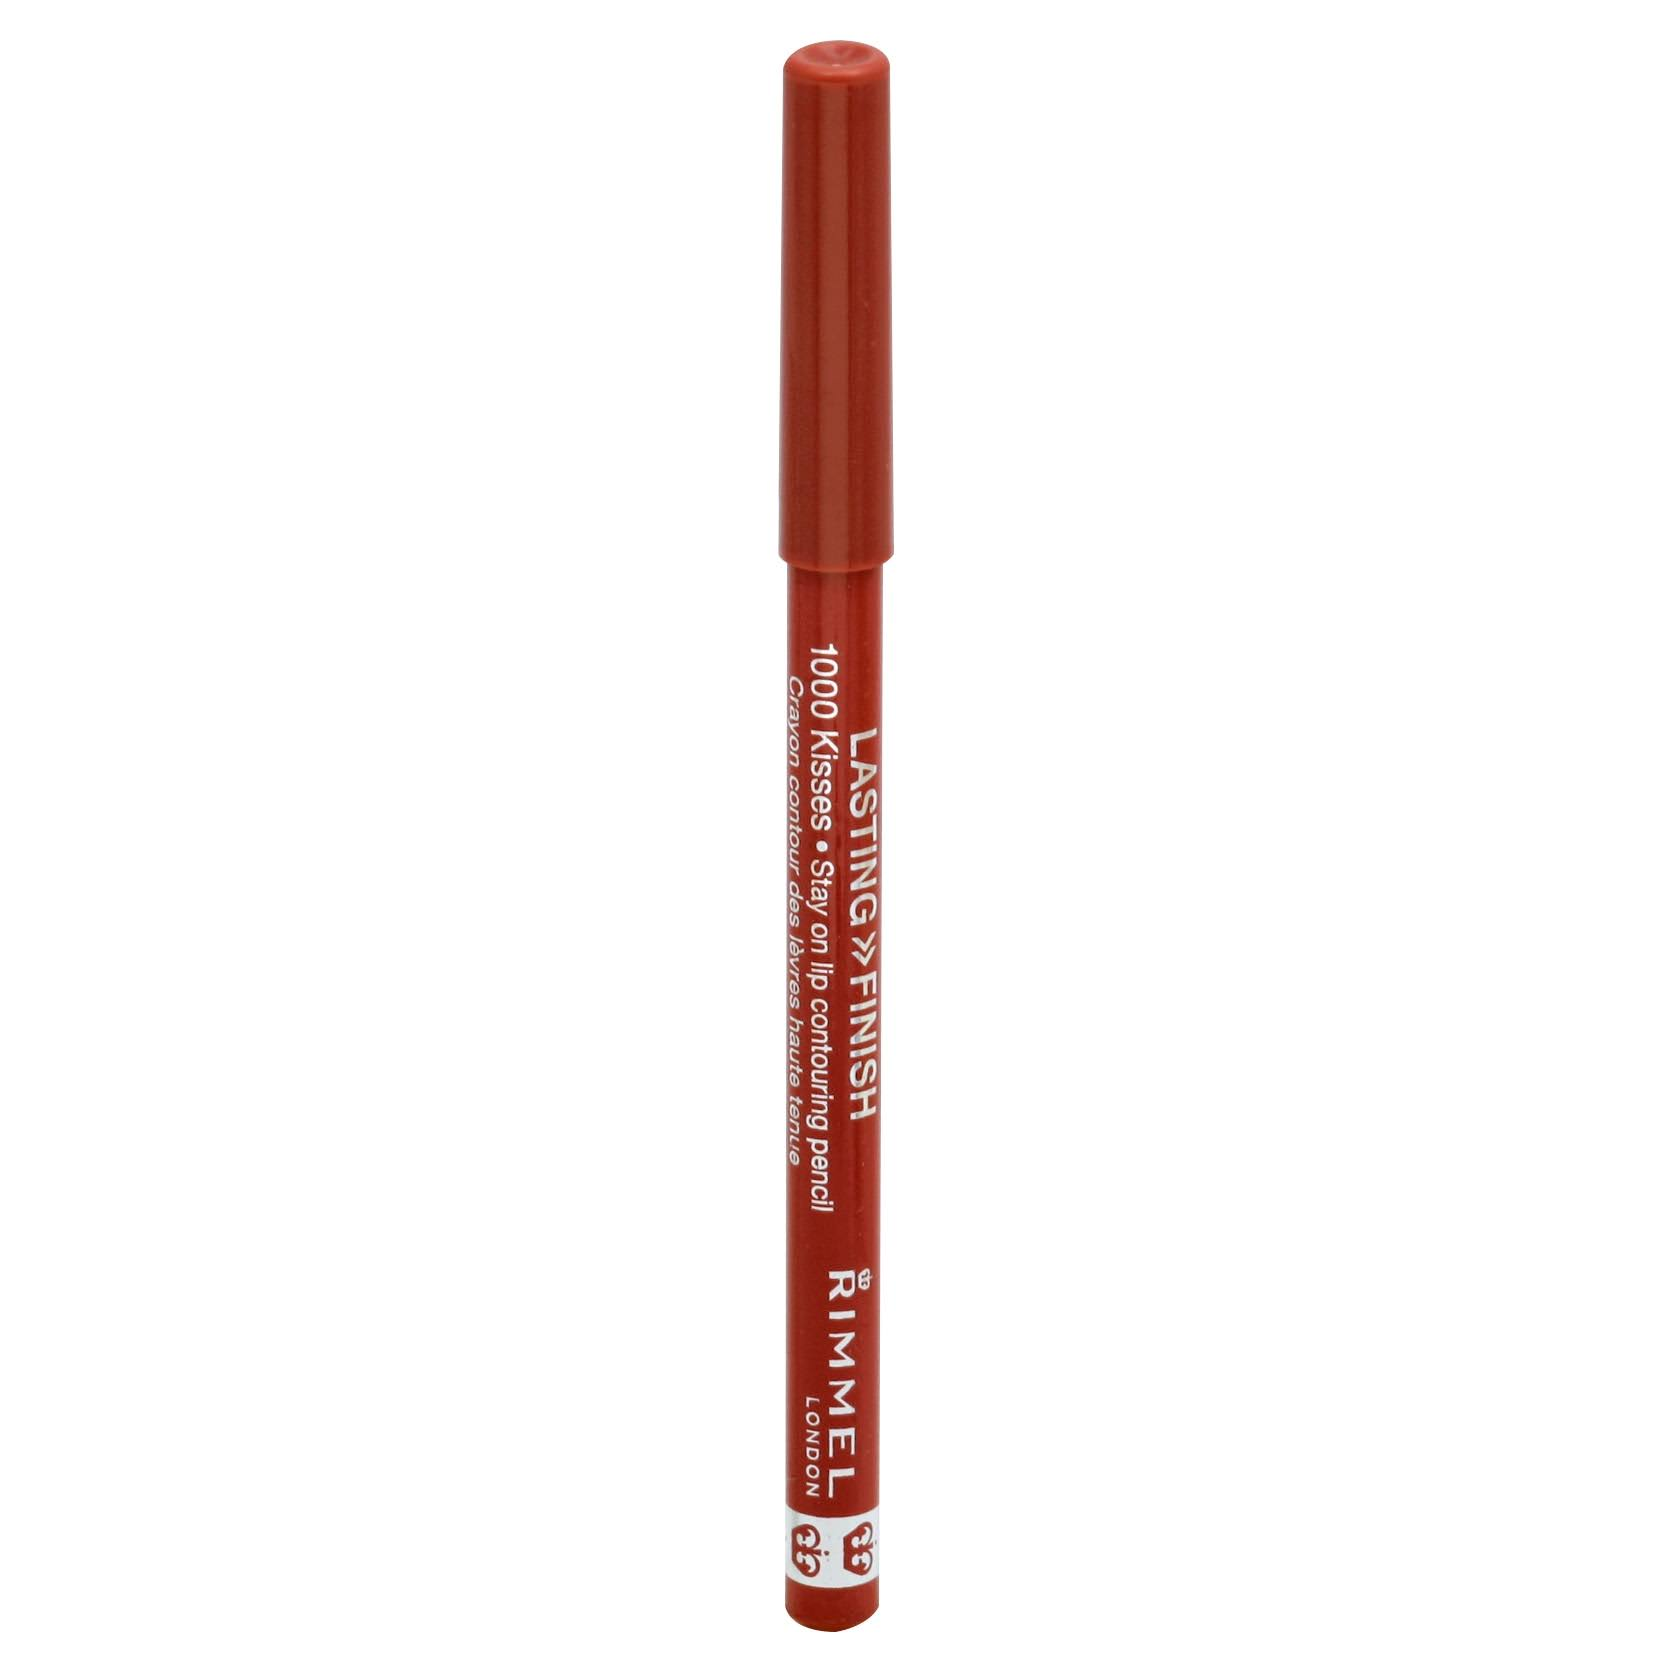 Rimmel Lasting Finish 1000 Kisses Lip Liner Pencil Blushing Nude